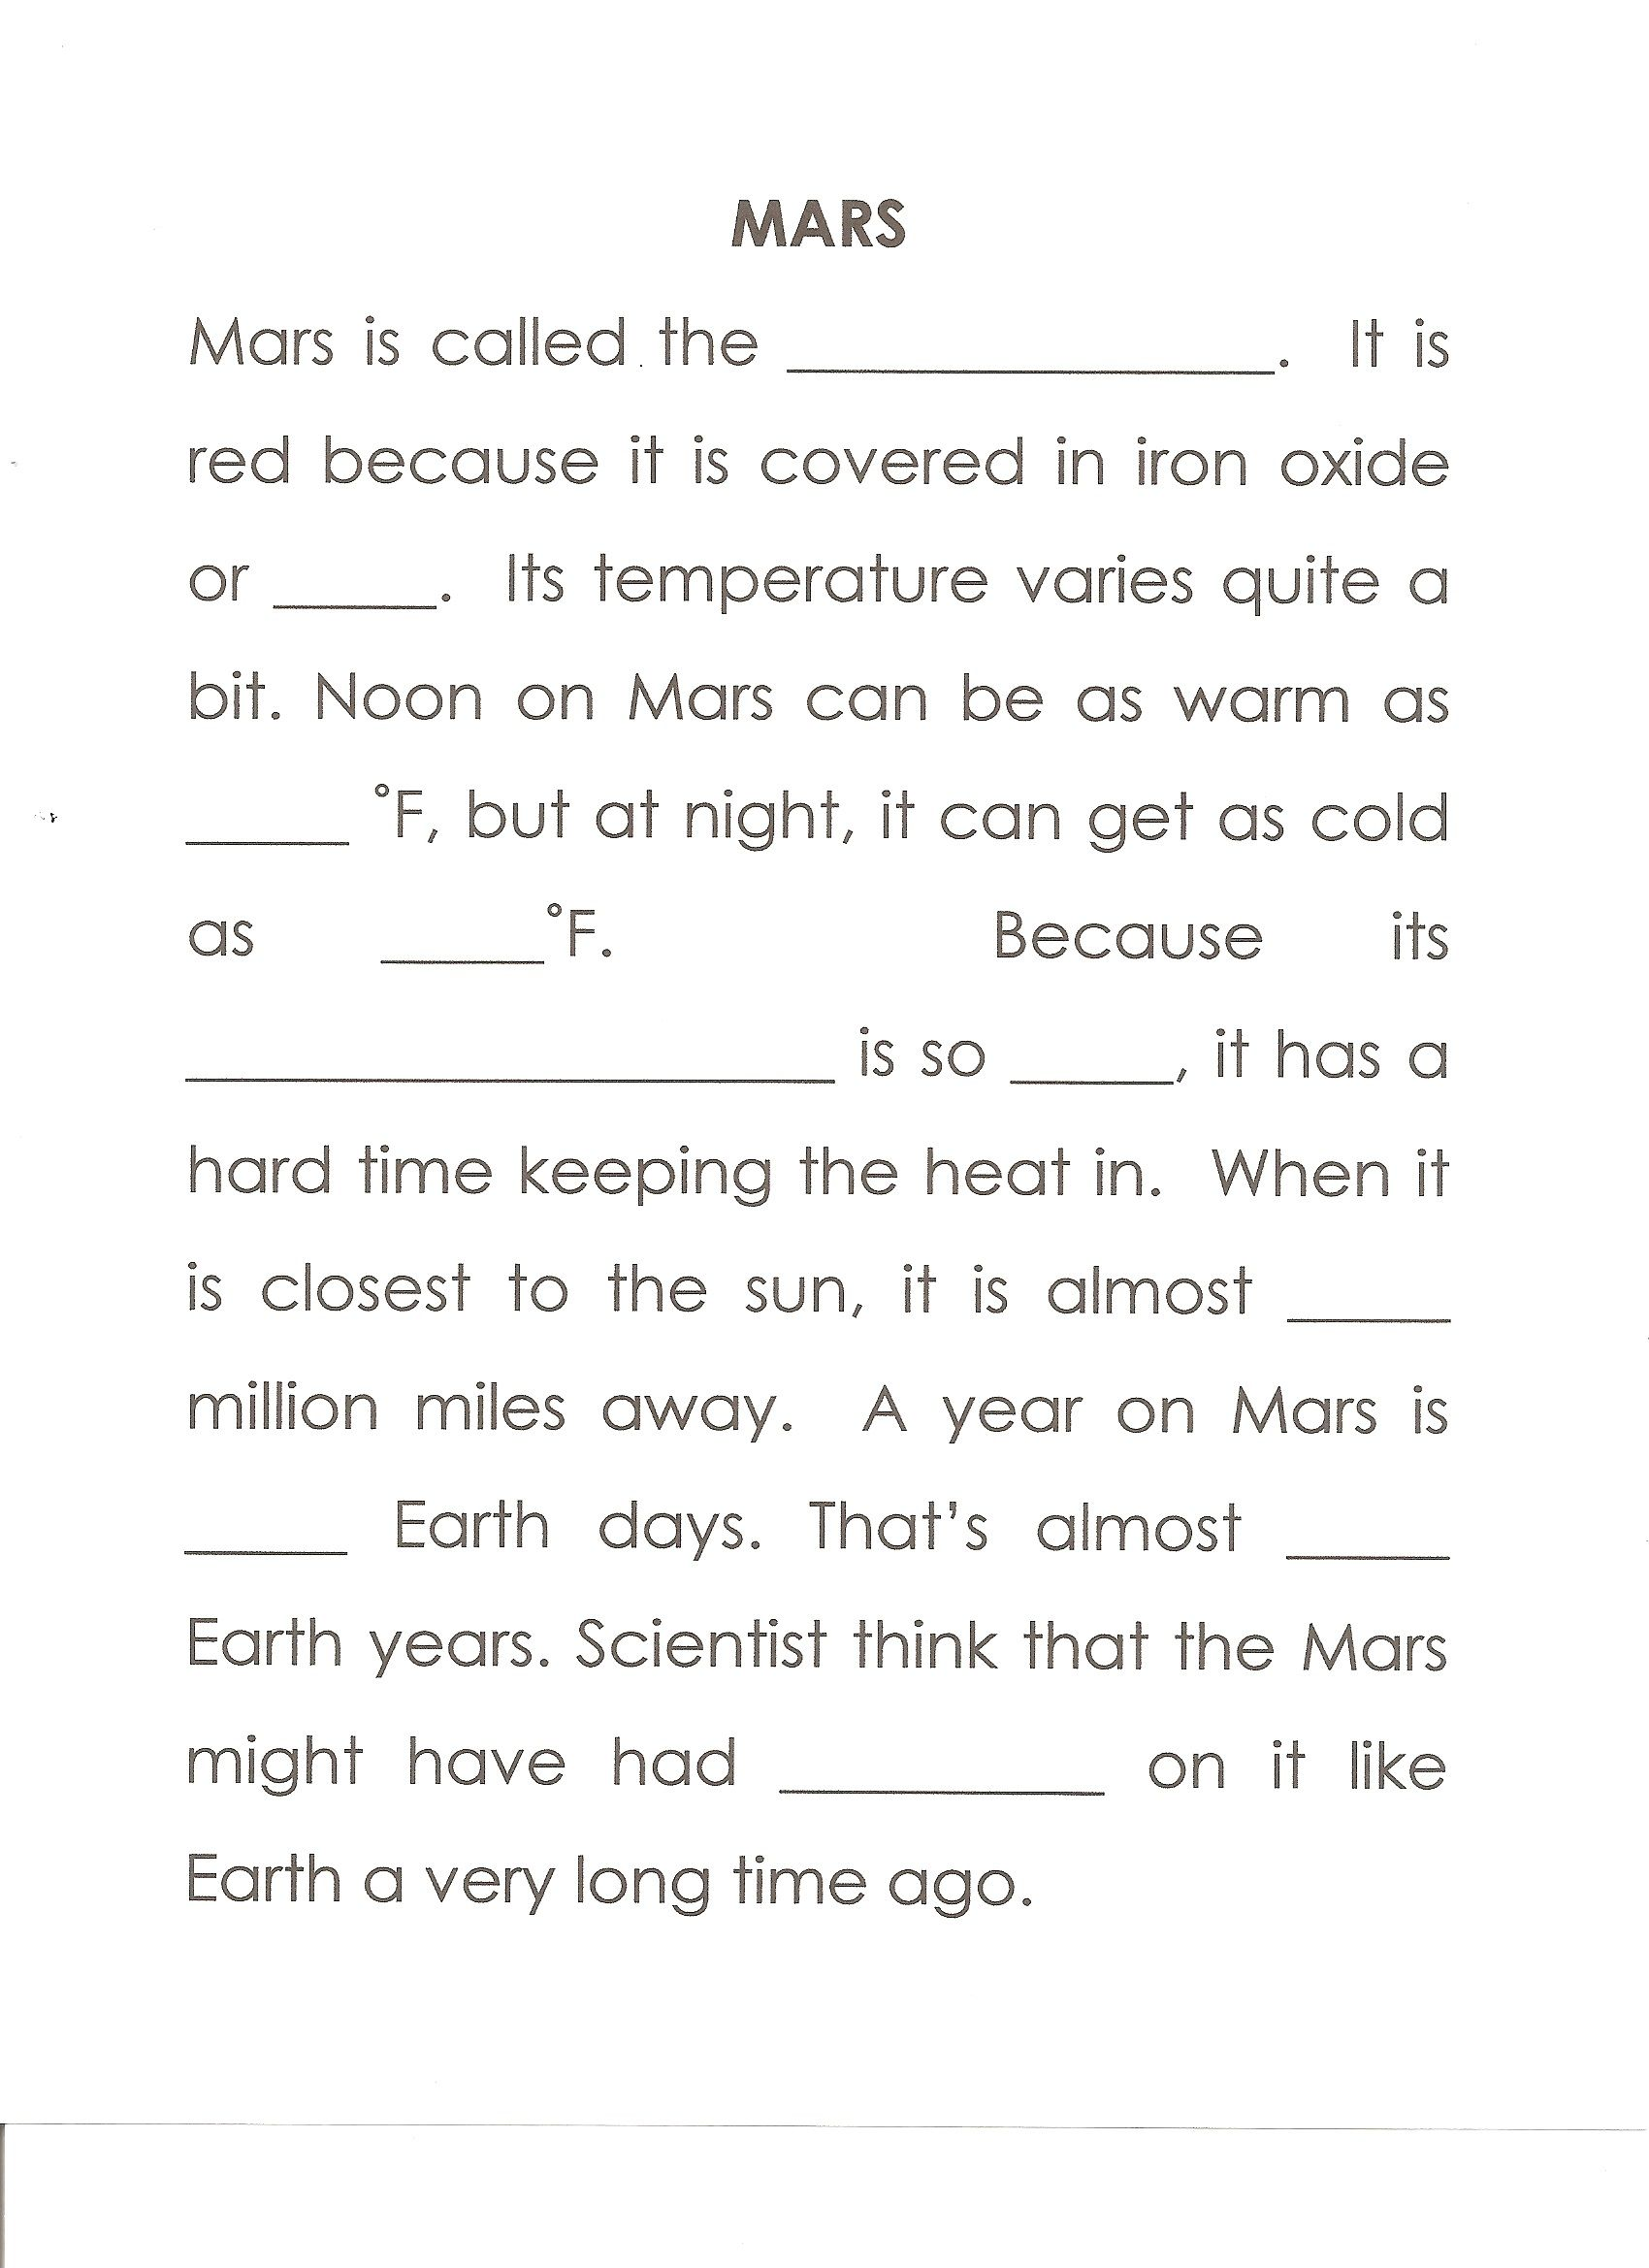 worksheet An Elemental Challenge Worksheet Answers mars worksheet answers red planet rust 70 225 atmosphere thin atmosphere